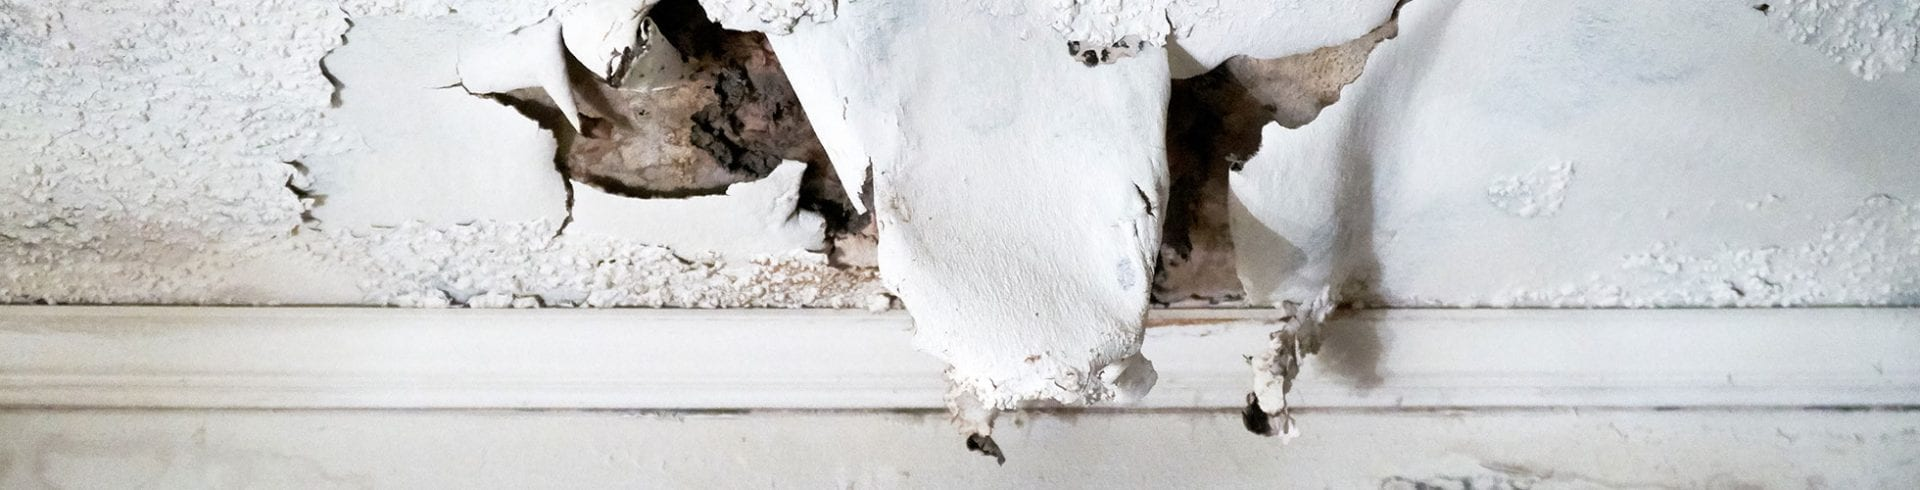 Tips & Tricks: Flooding and Mold | Blog | Mold Off®